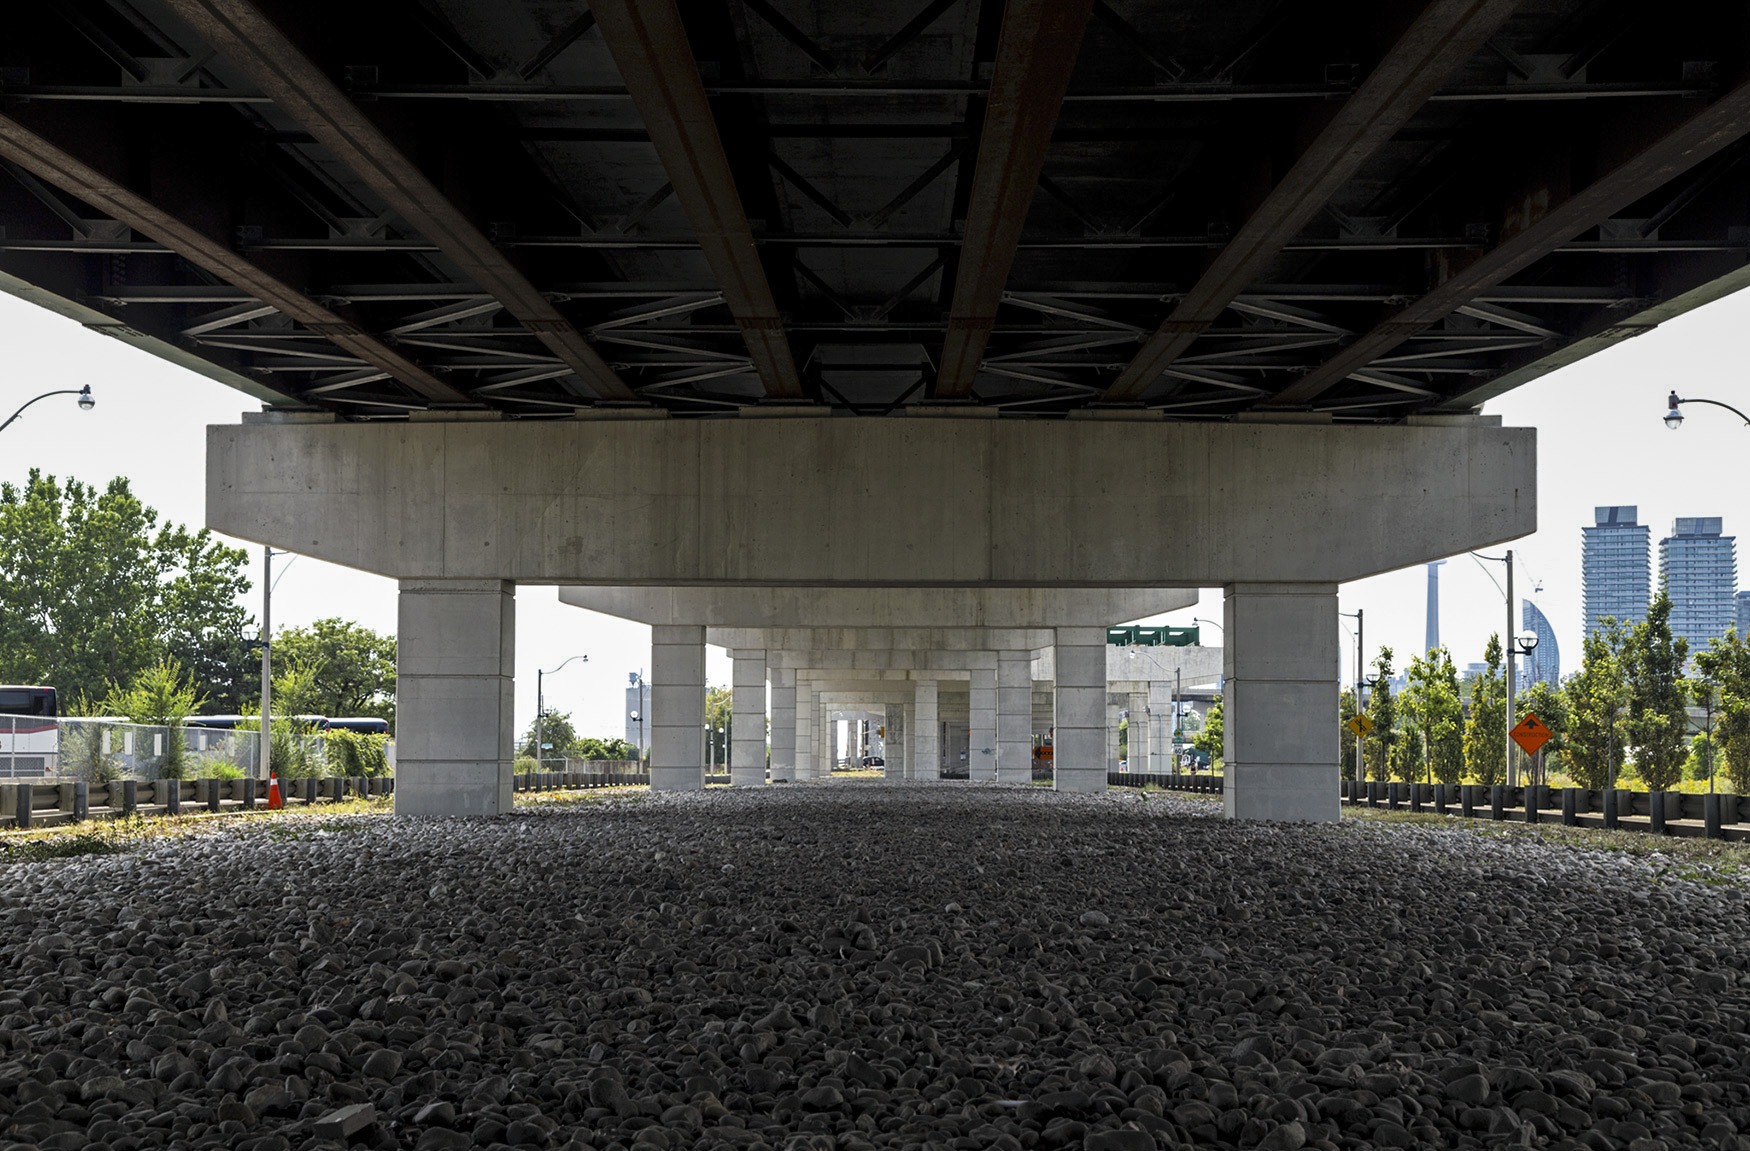 20160729. Under Toronto's pristine elevated Gardiner Expressway